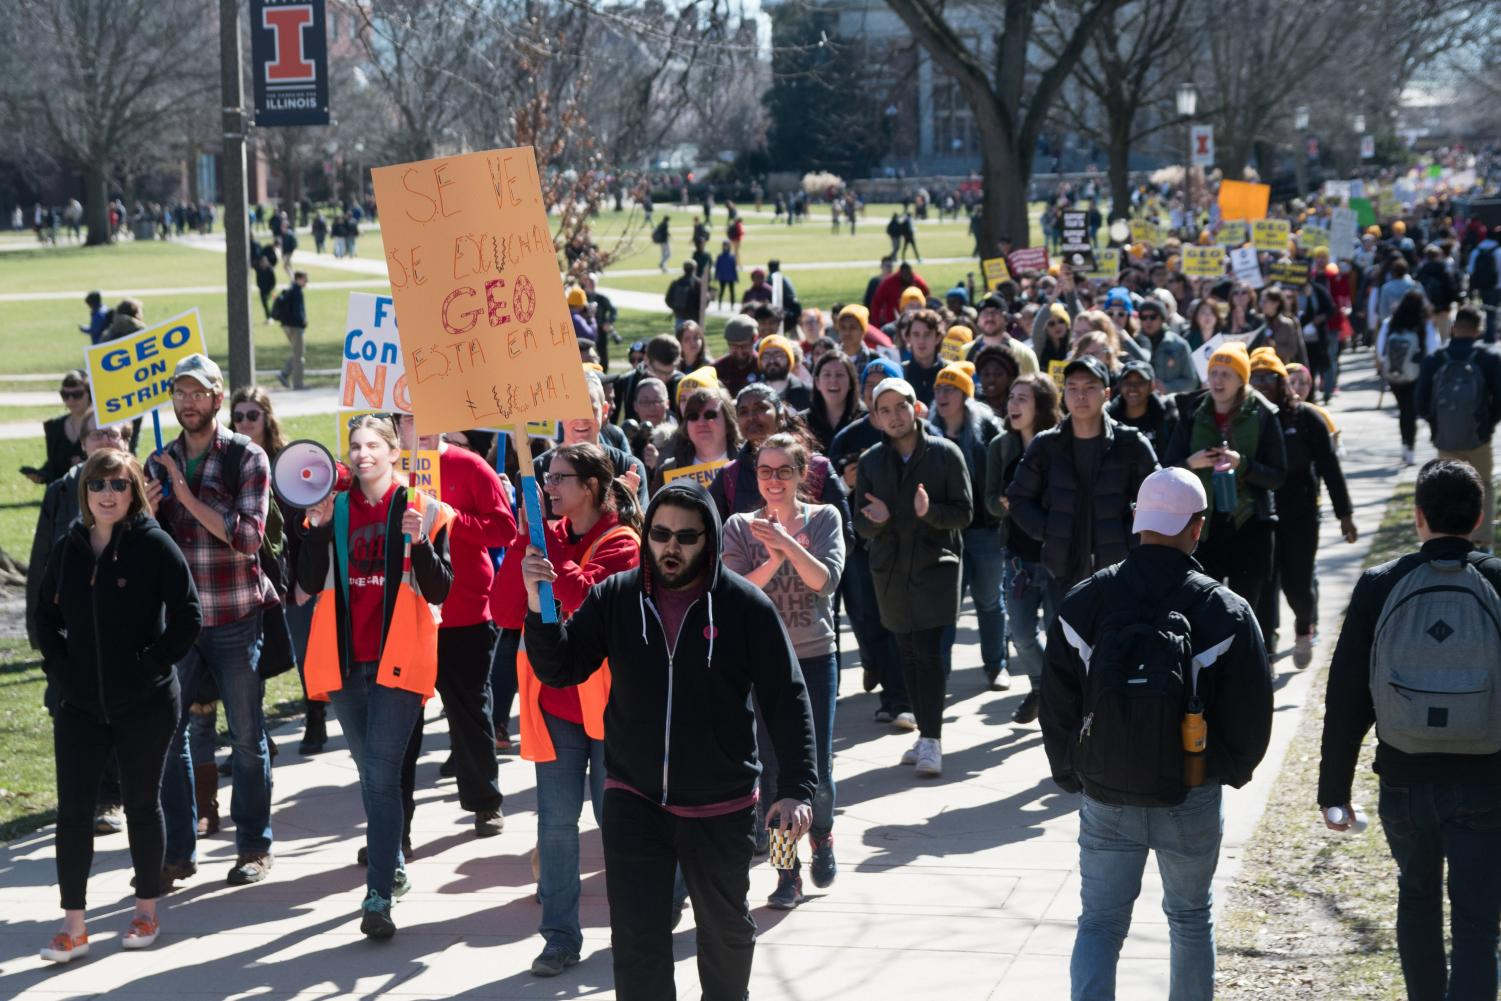 Members of GEO protest on the Main Quad on Feb. 26.